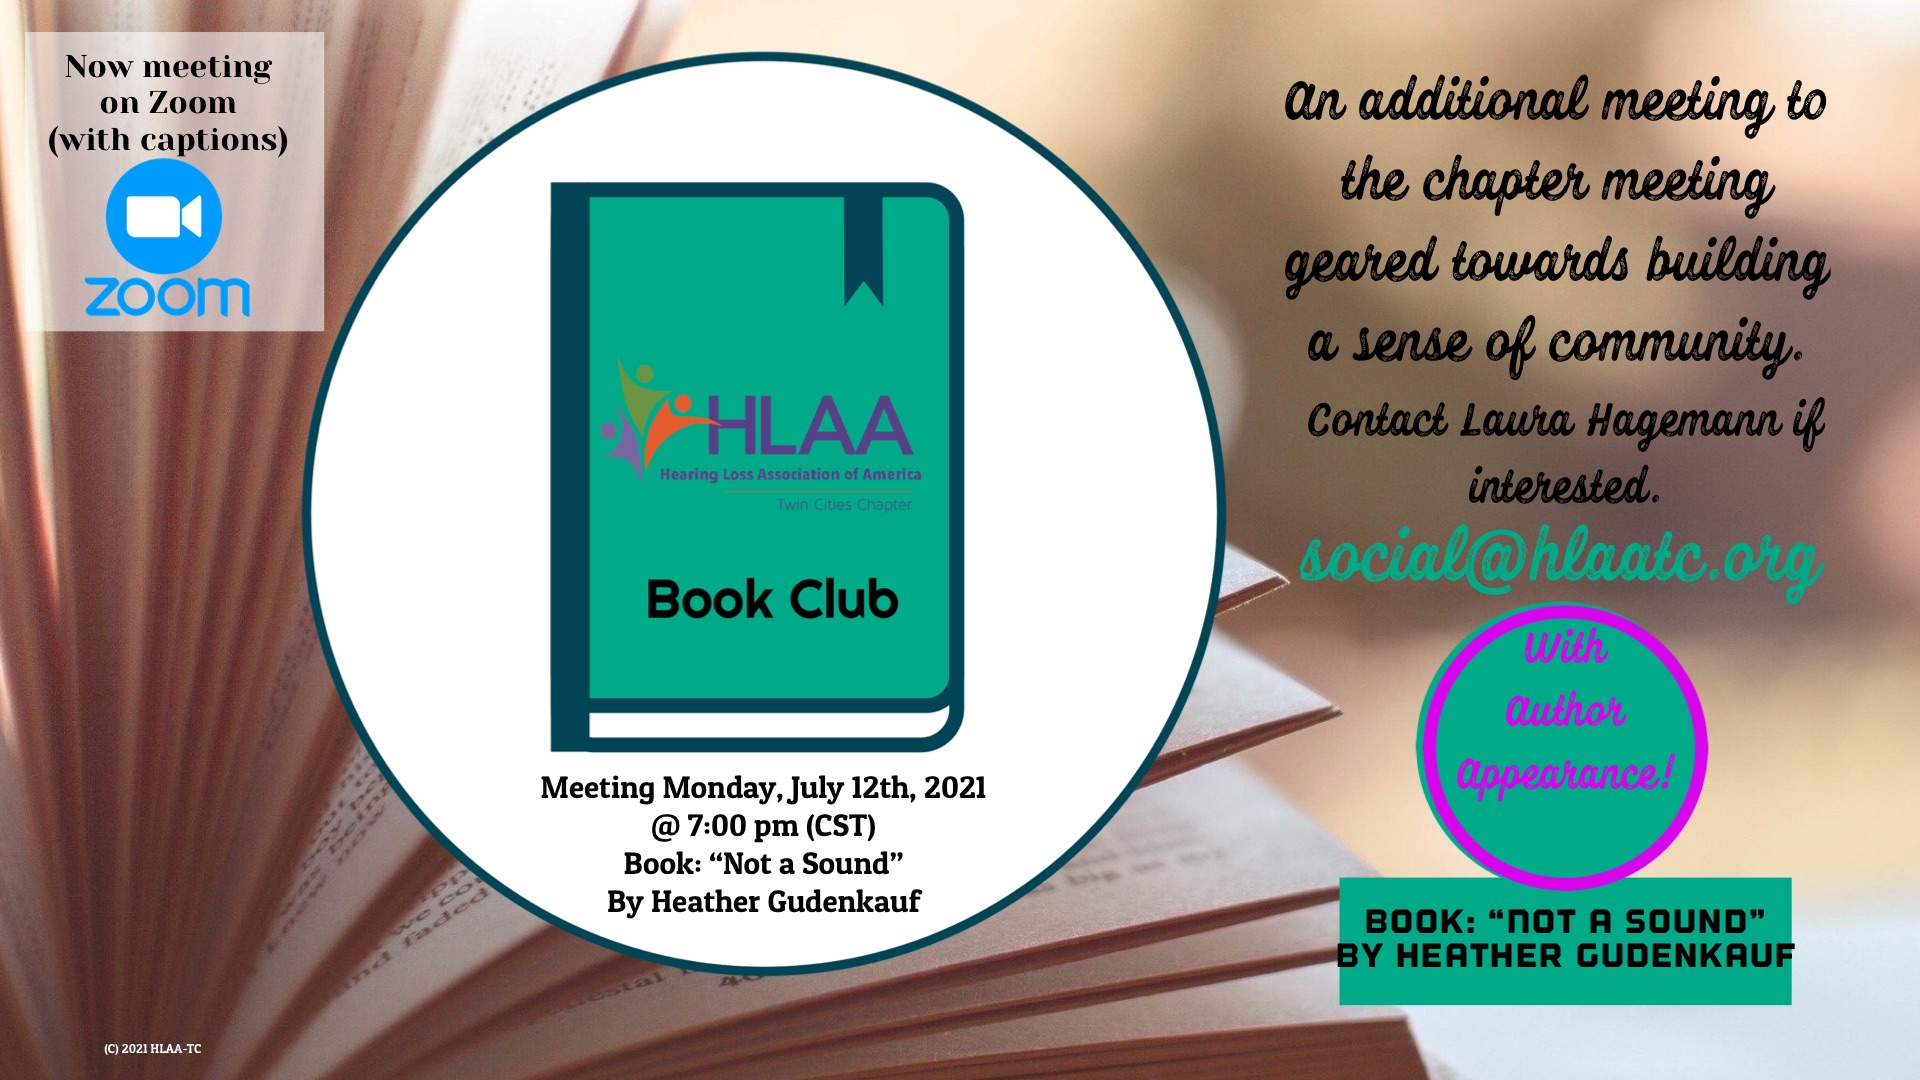 HLAA-TC Book Club is Monday, July 12th at 7:00 p.m. (CST)